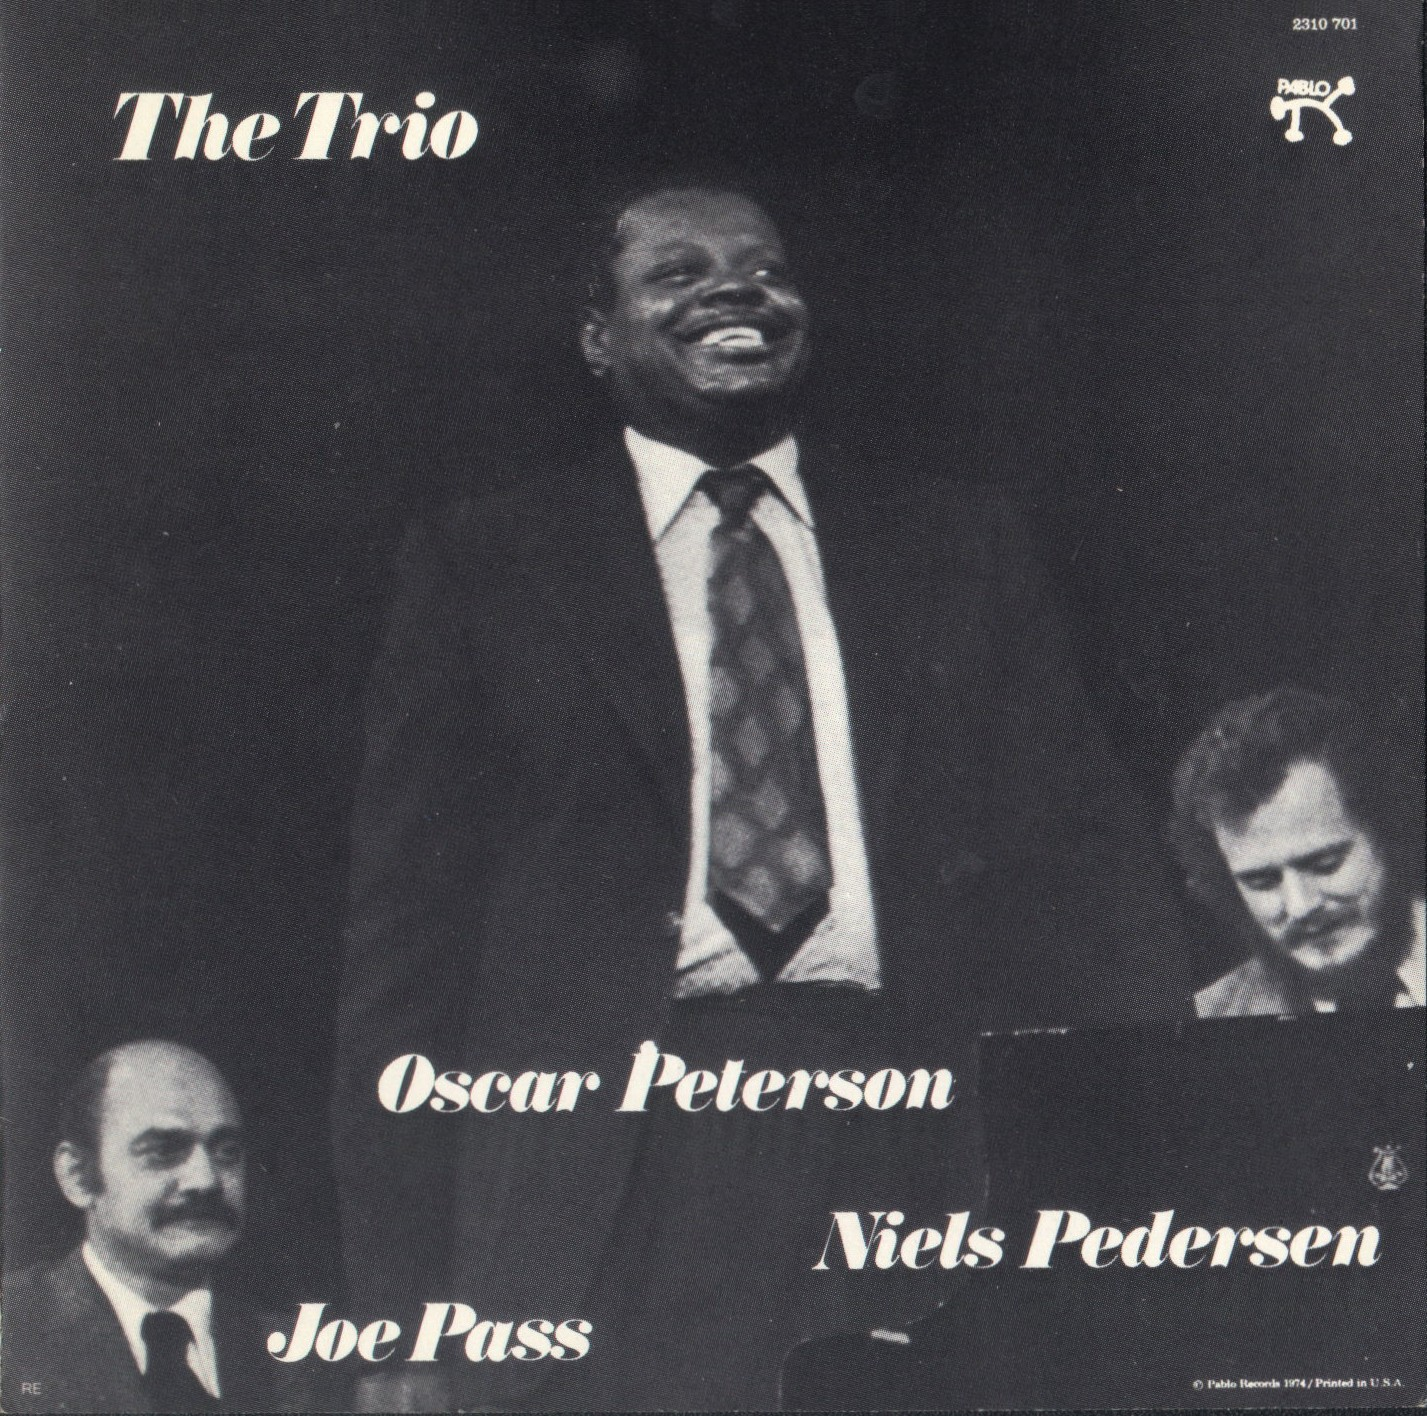 2010 10 01 archive additionally Peterson Pass Pedersen The Trio further Oscar peterson likewise Oscarpeterson in addition  on come sunday chicago blues oscar peterson etude